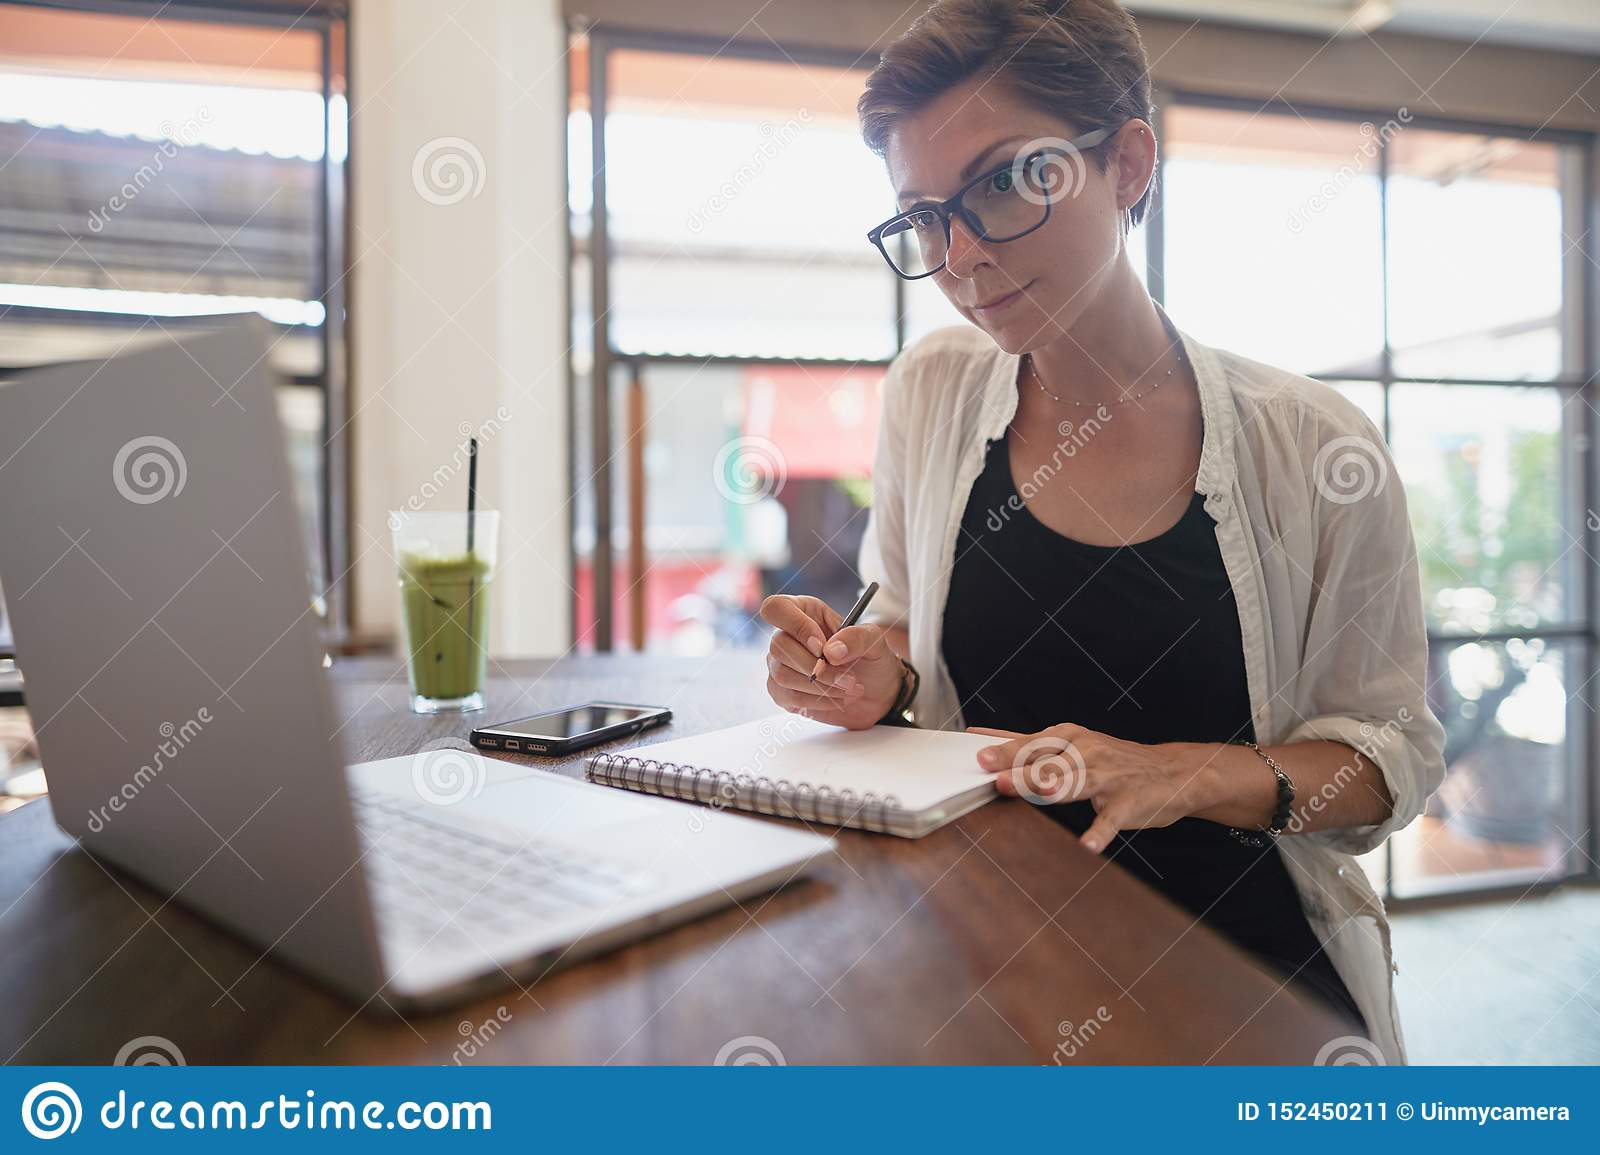 Girl working in a cafe. Freelance concept